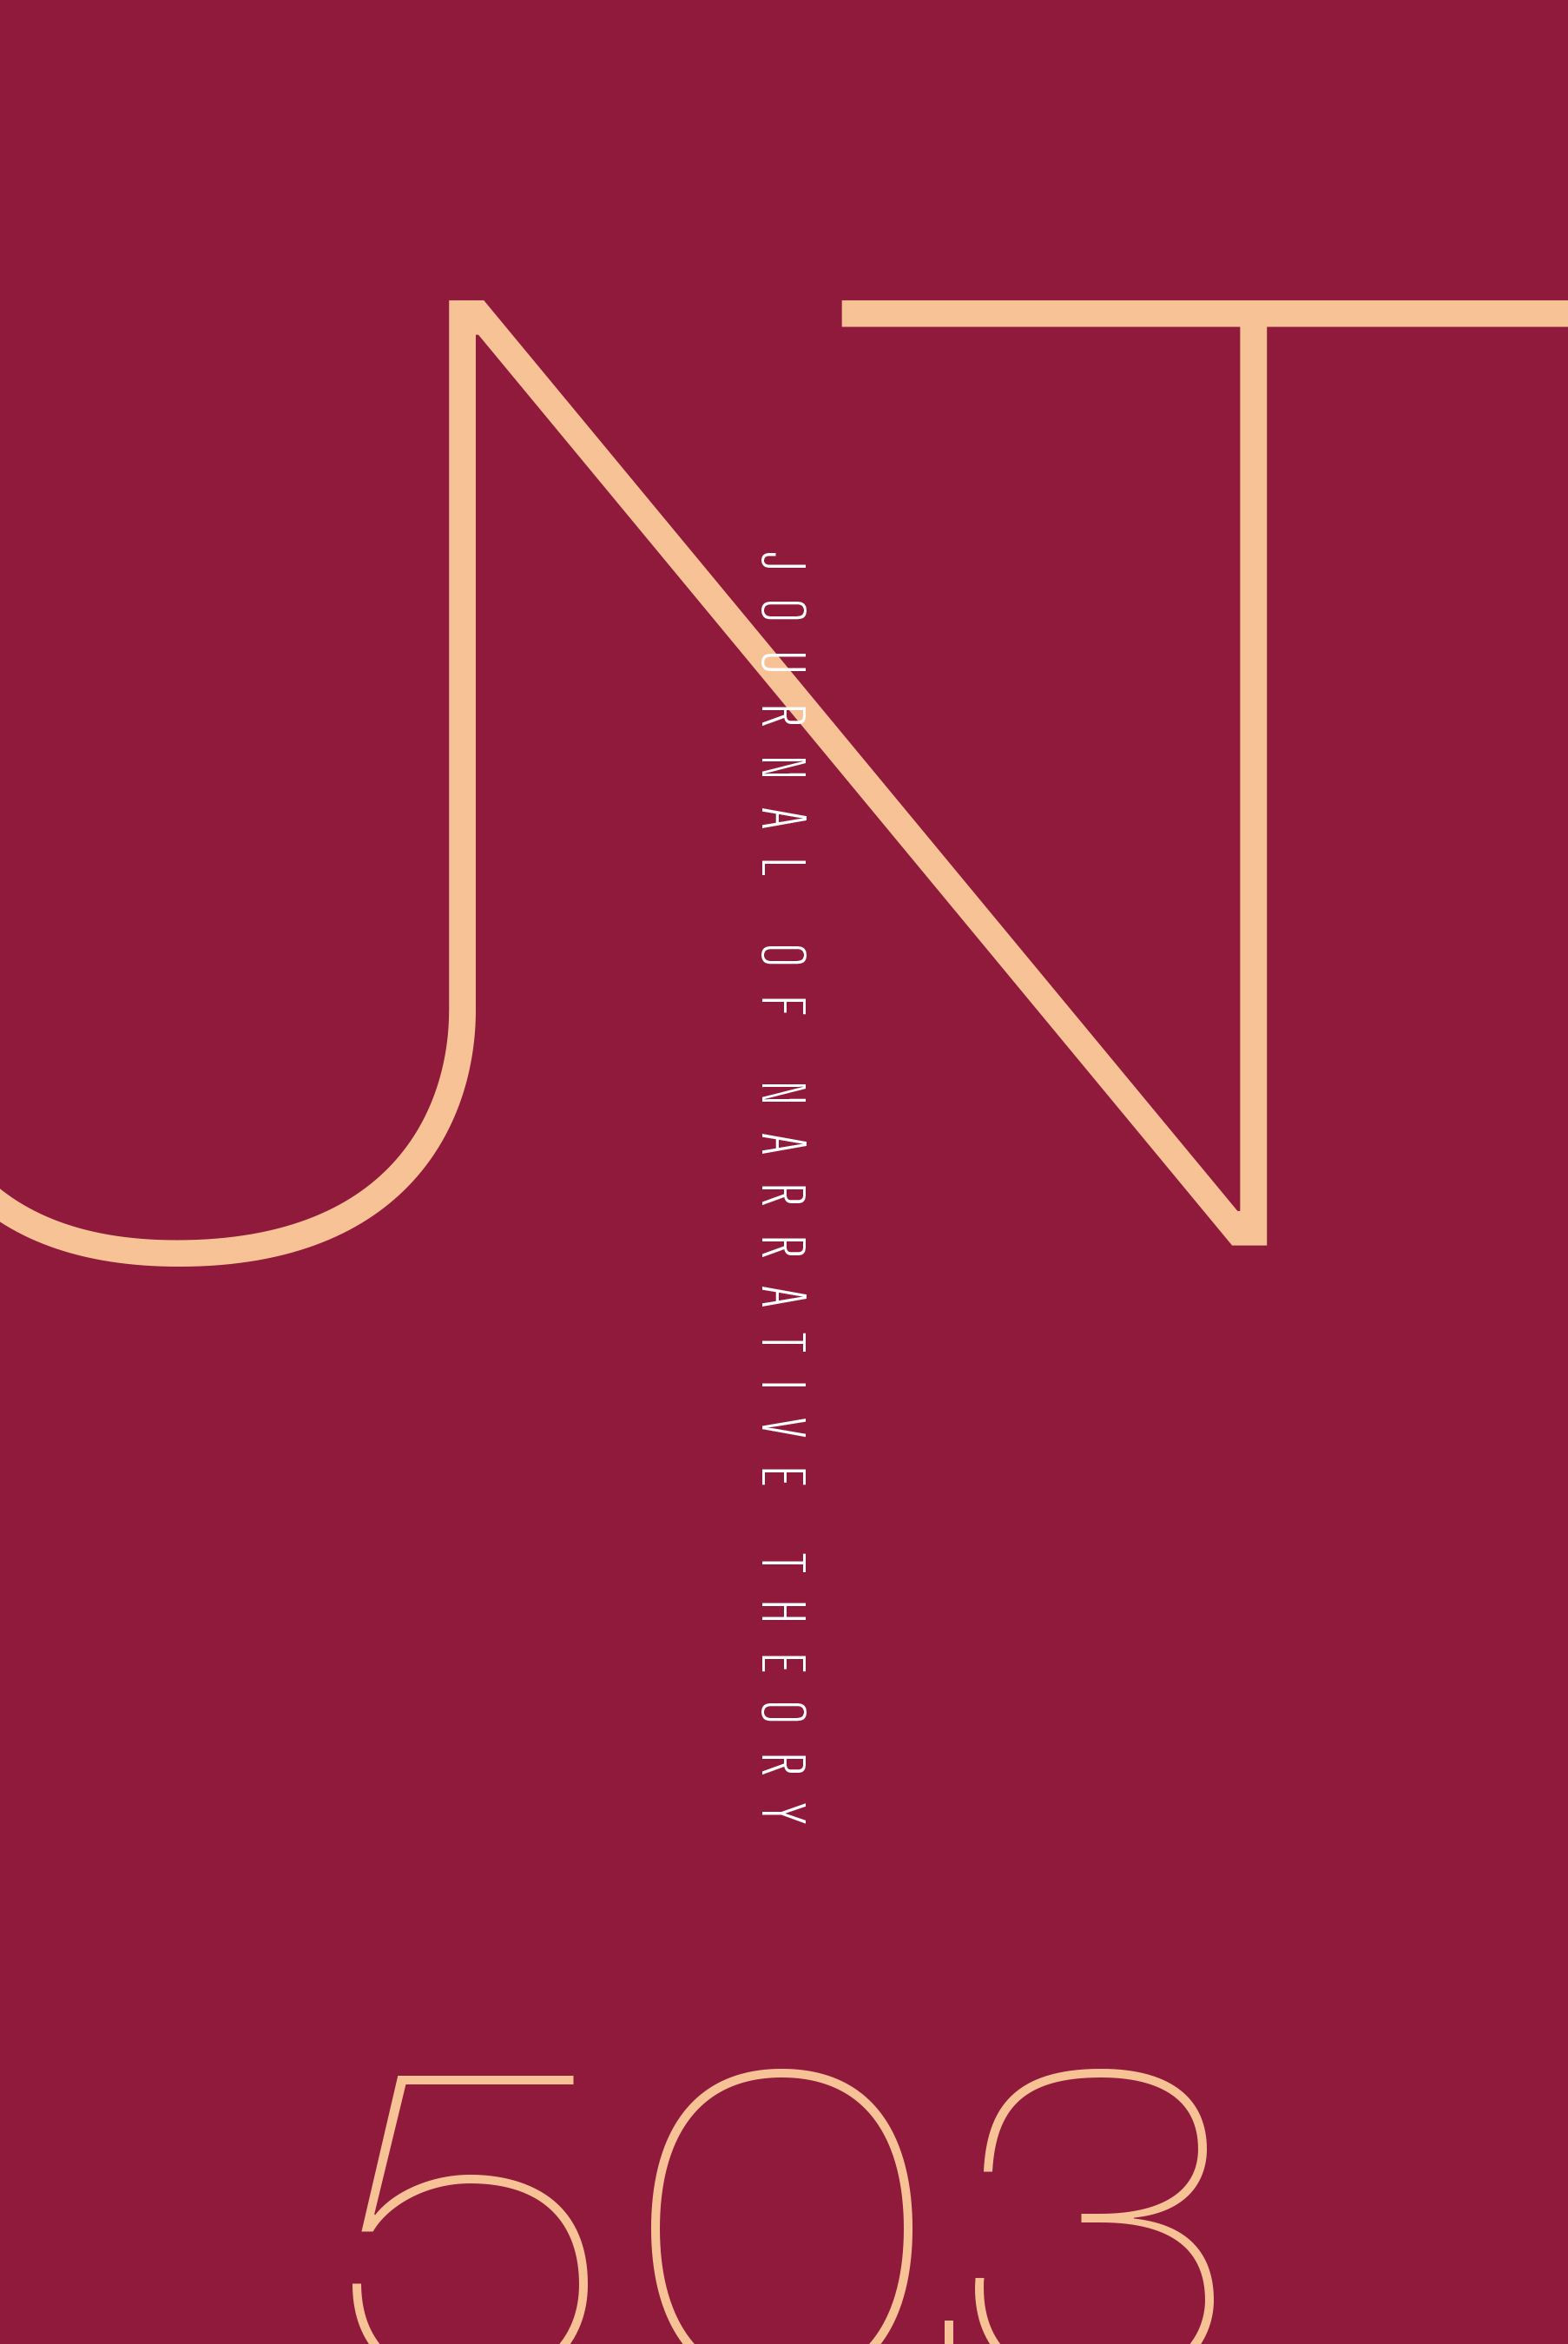 Journal of Narrative Theory: Volume 50, Number 3, Fall 2020